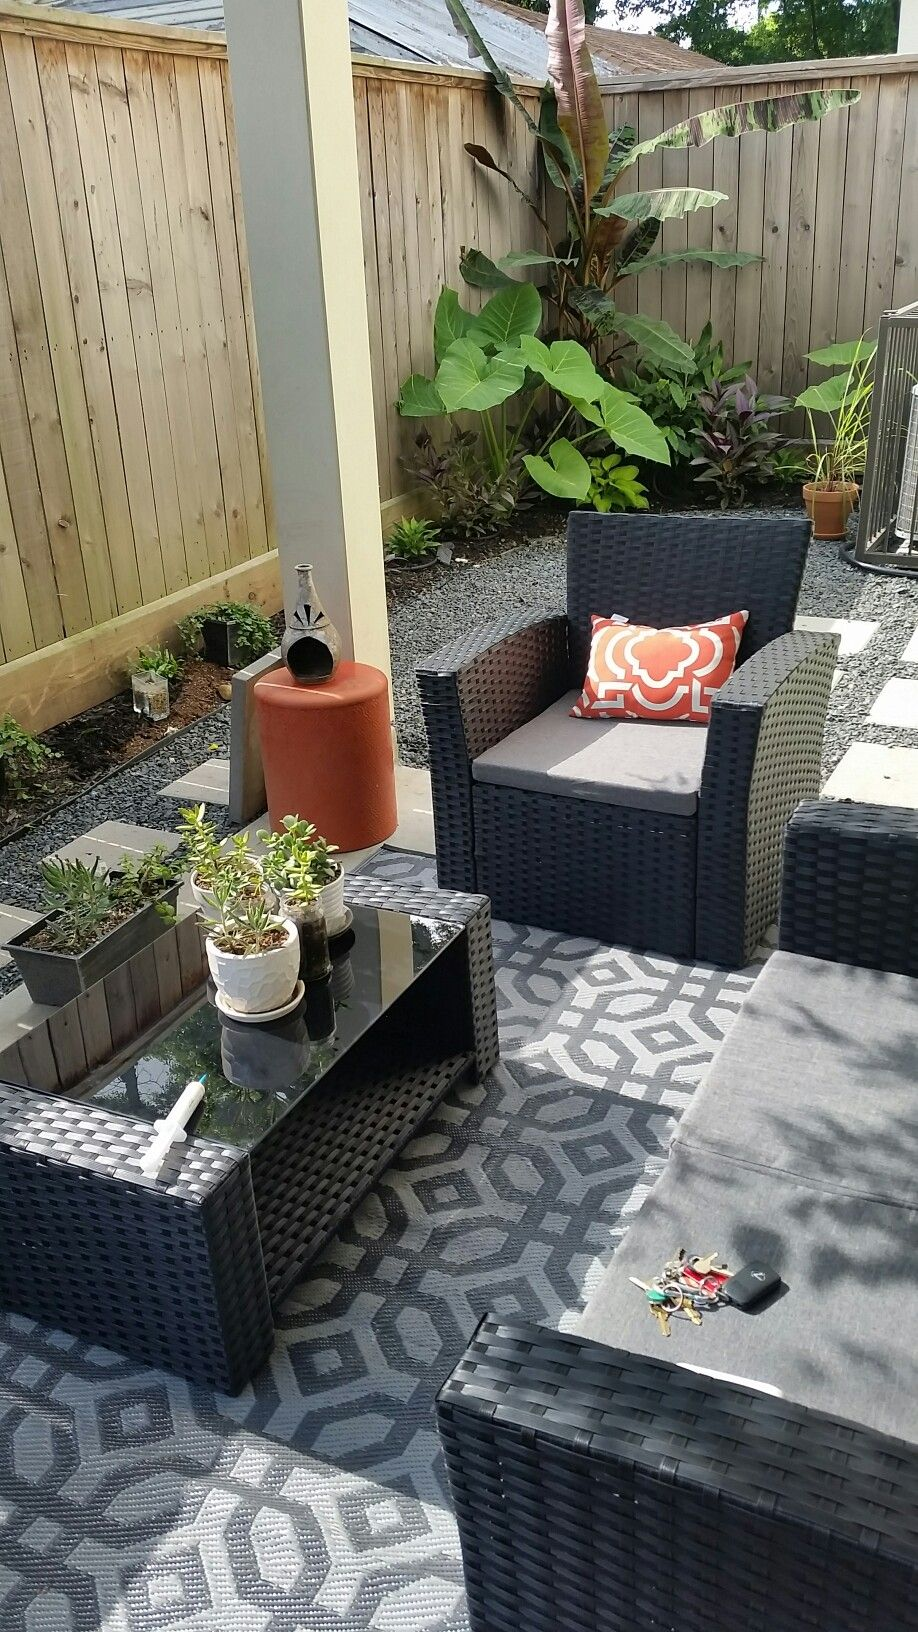 My backyard zen transformation | Outdoor decor, Outdoor ... on My Garden Outdoor Living id=12488